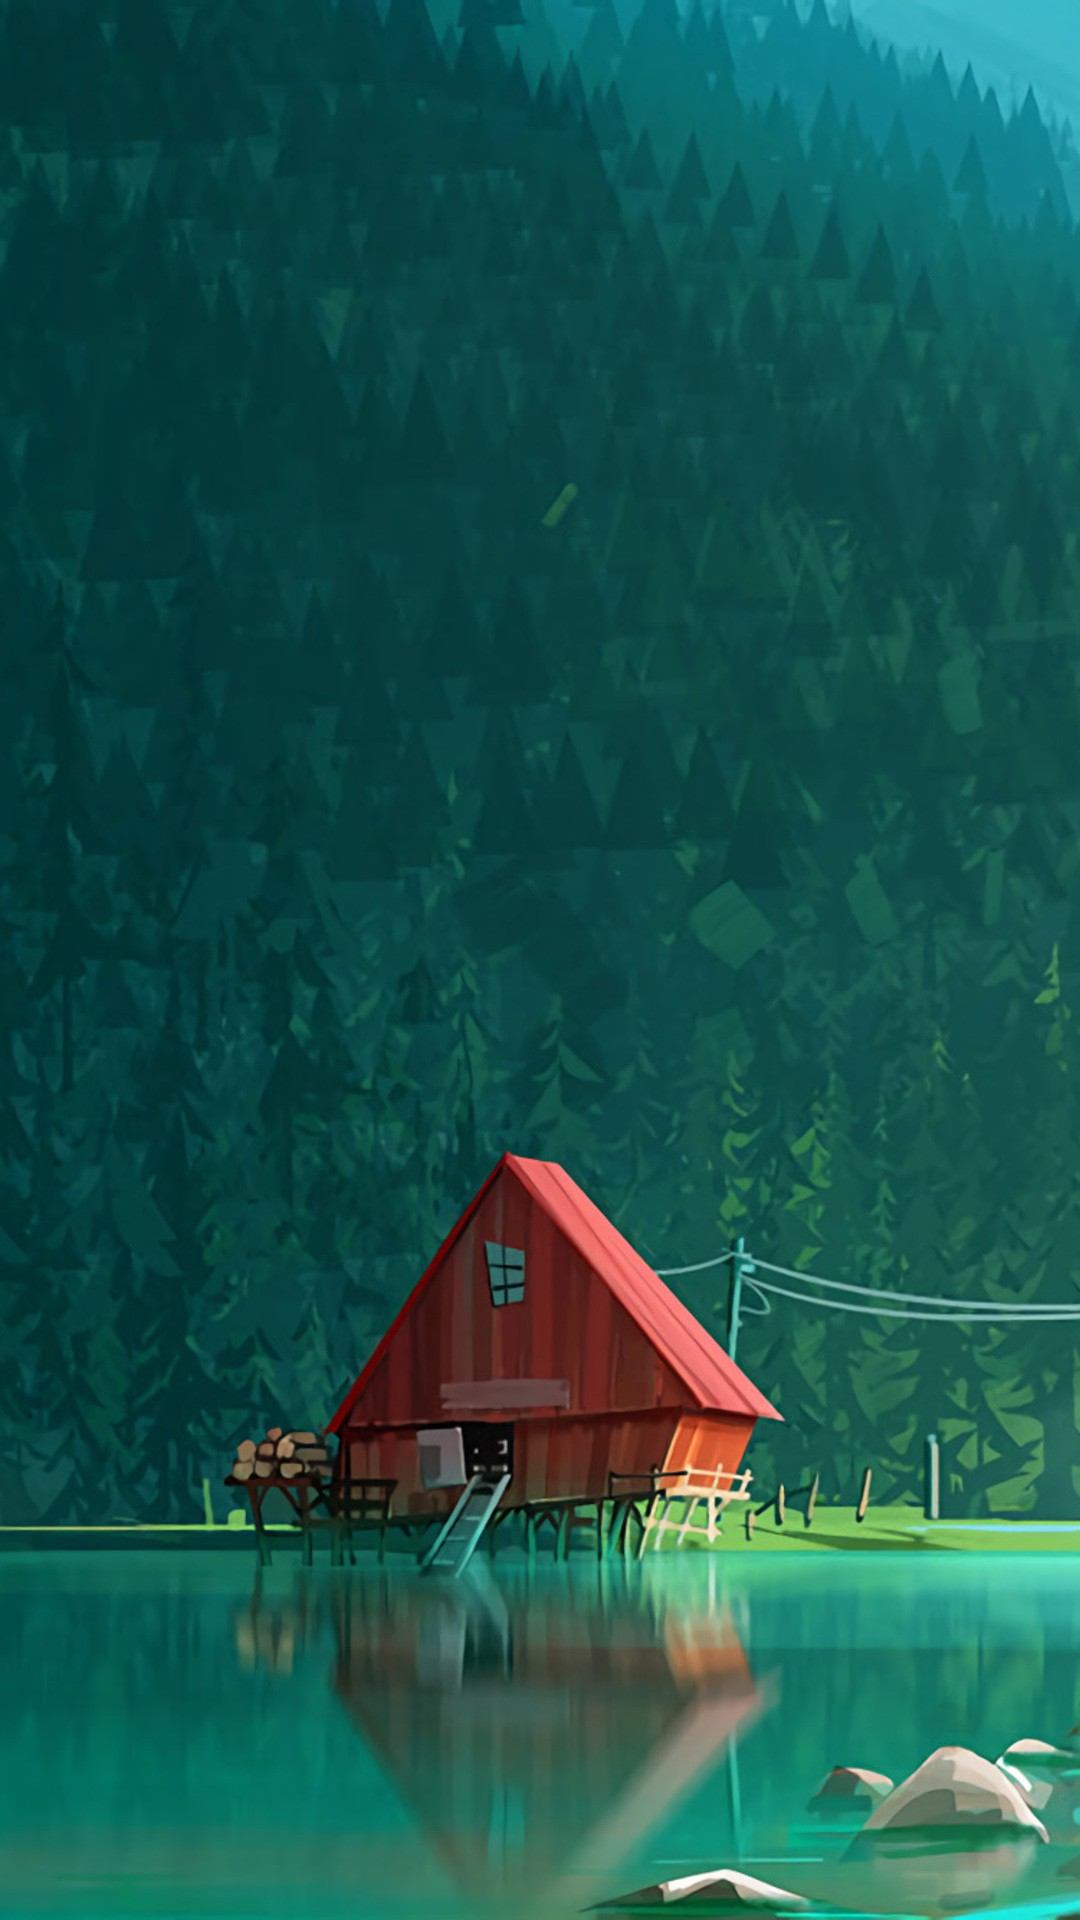 House In Woods Minimalism Artwork Kk Wallpaper 1080x1920